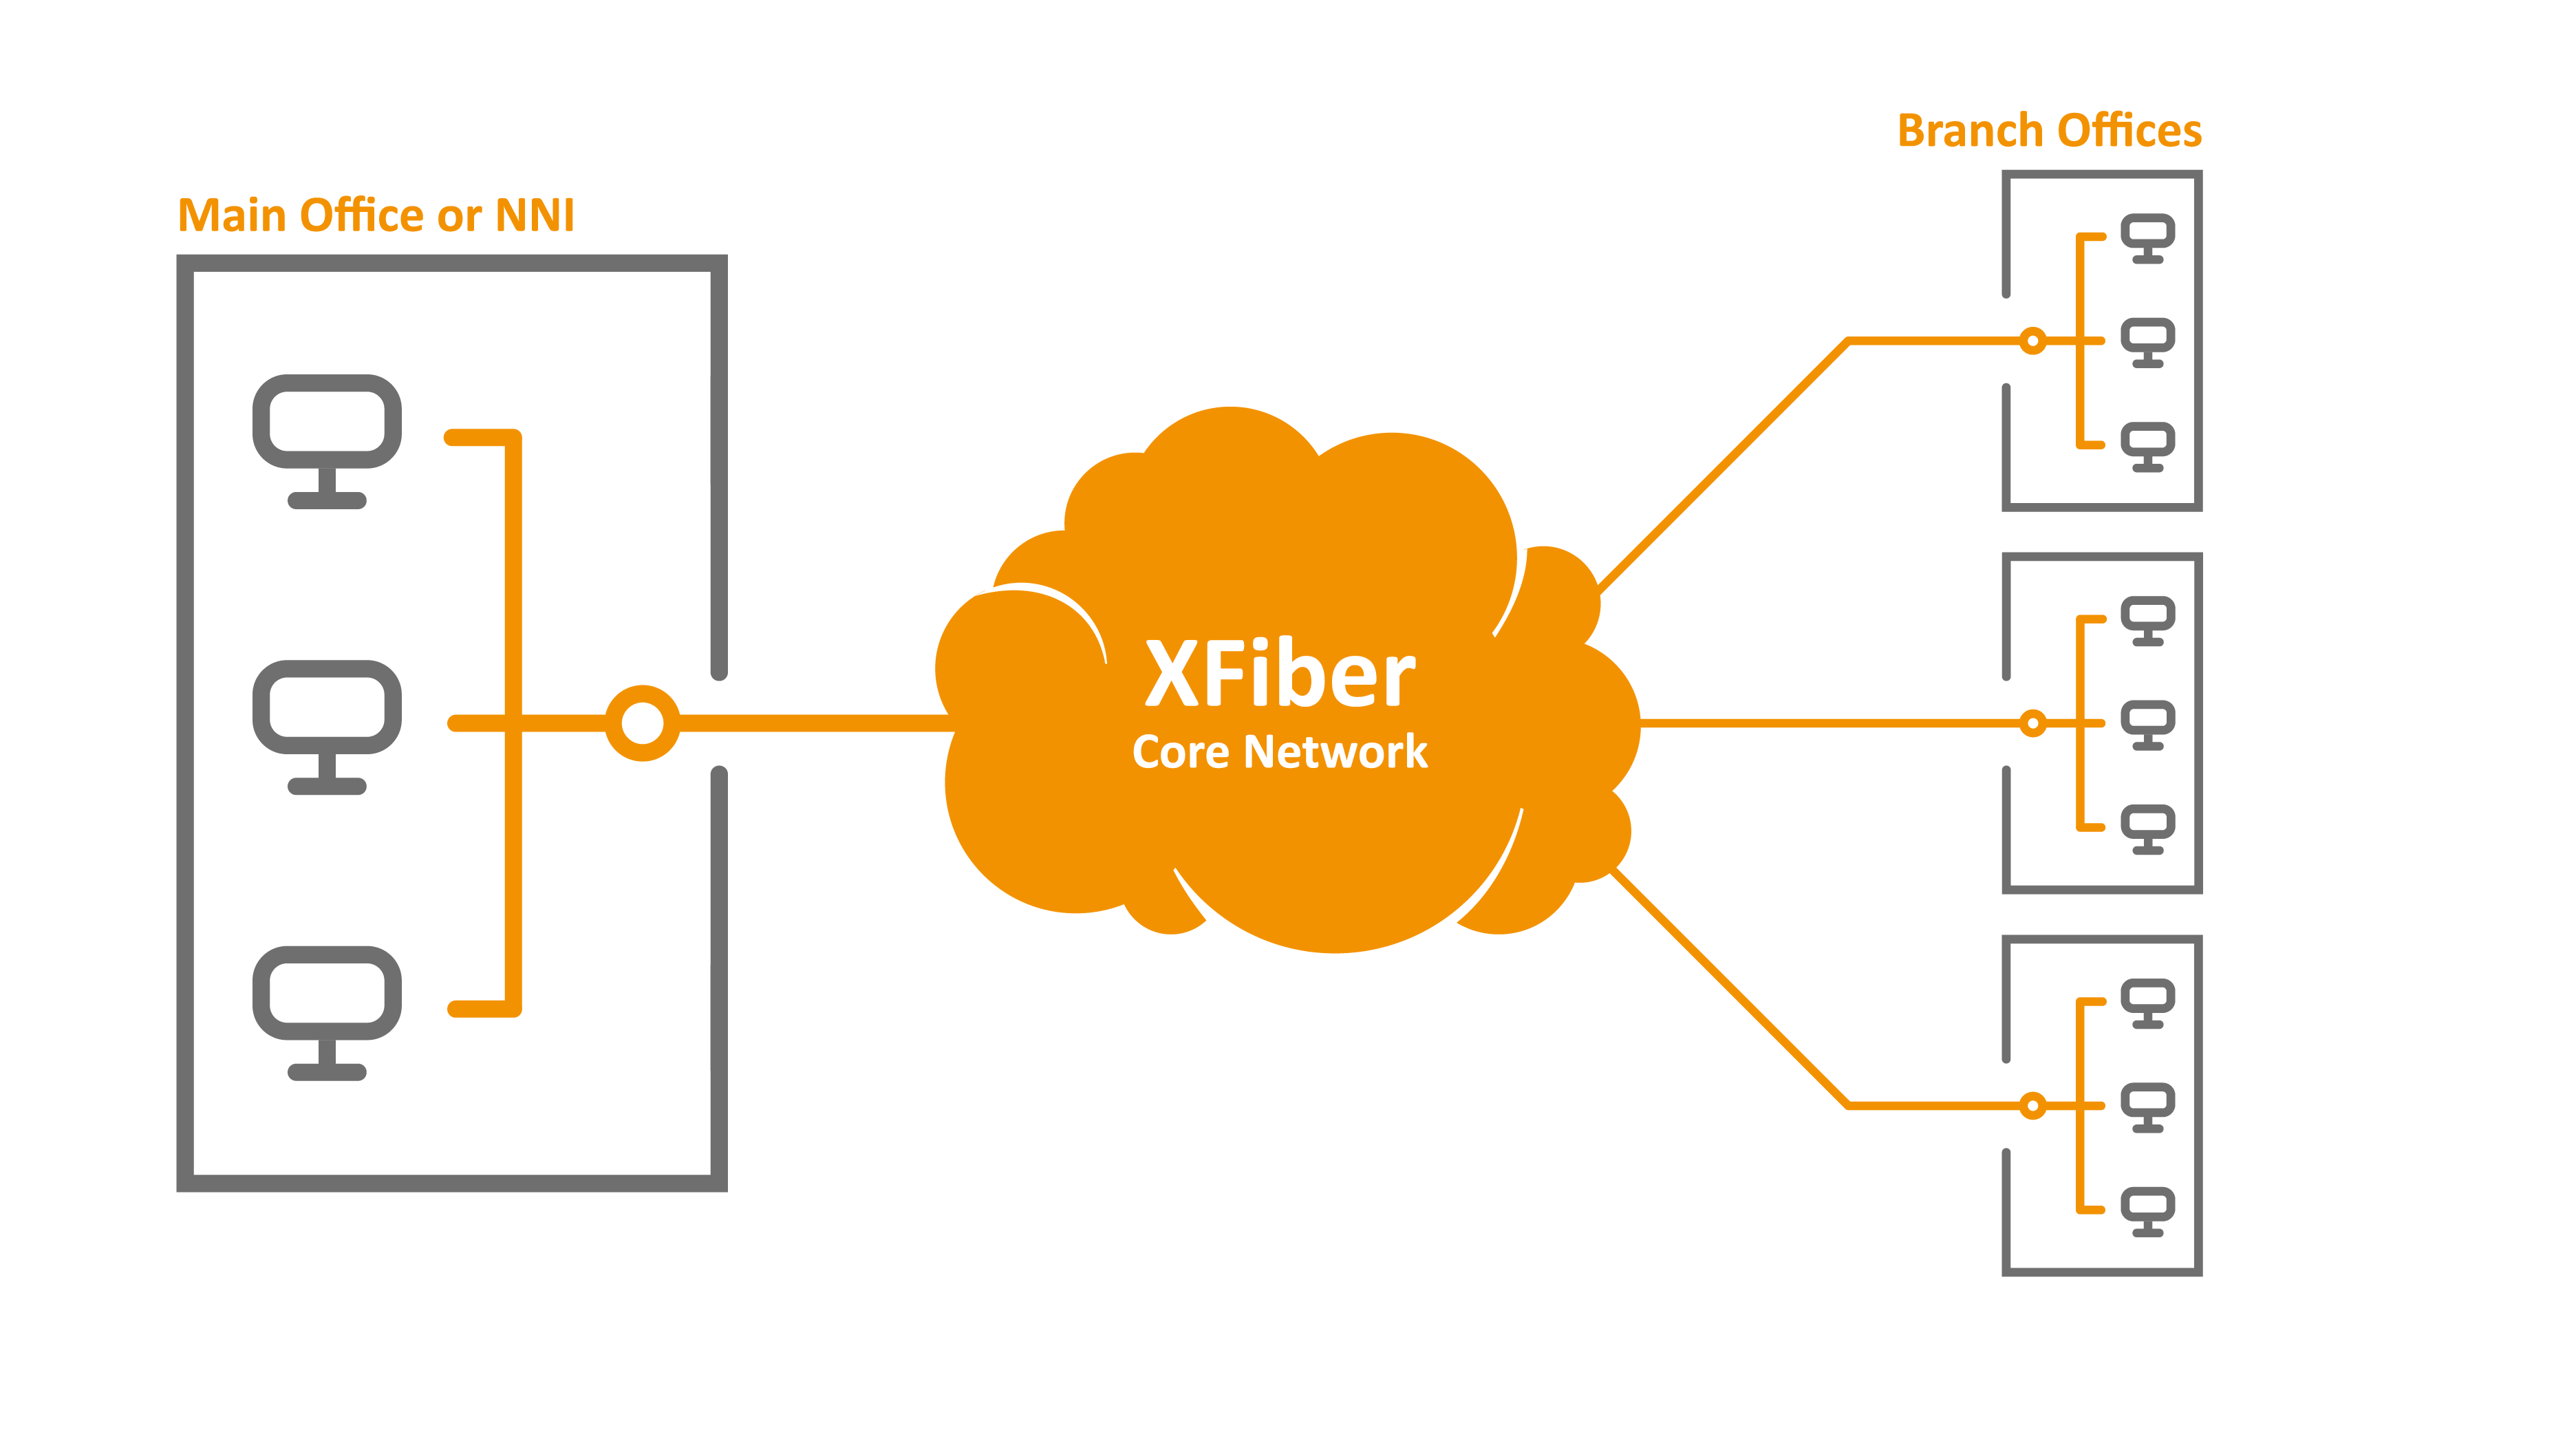 Xfiber Provider Of High Performance Datacom Series Parallel Wiring On Electrical Multiple Outlets Closed Corporate Networks That Connect A Companys Branch Offices Shops Hotels Or Restaurants To The Main Office Have Many Benefits